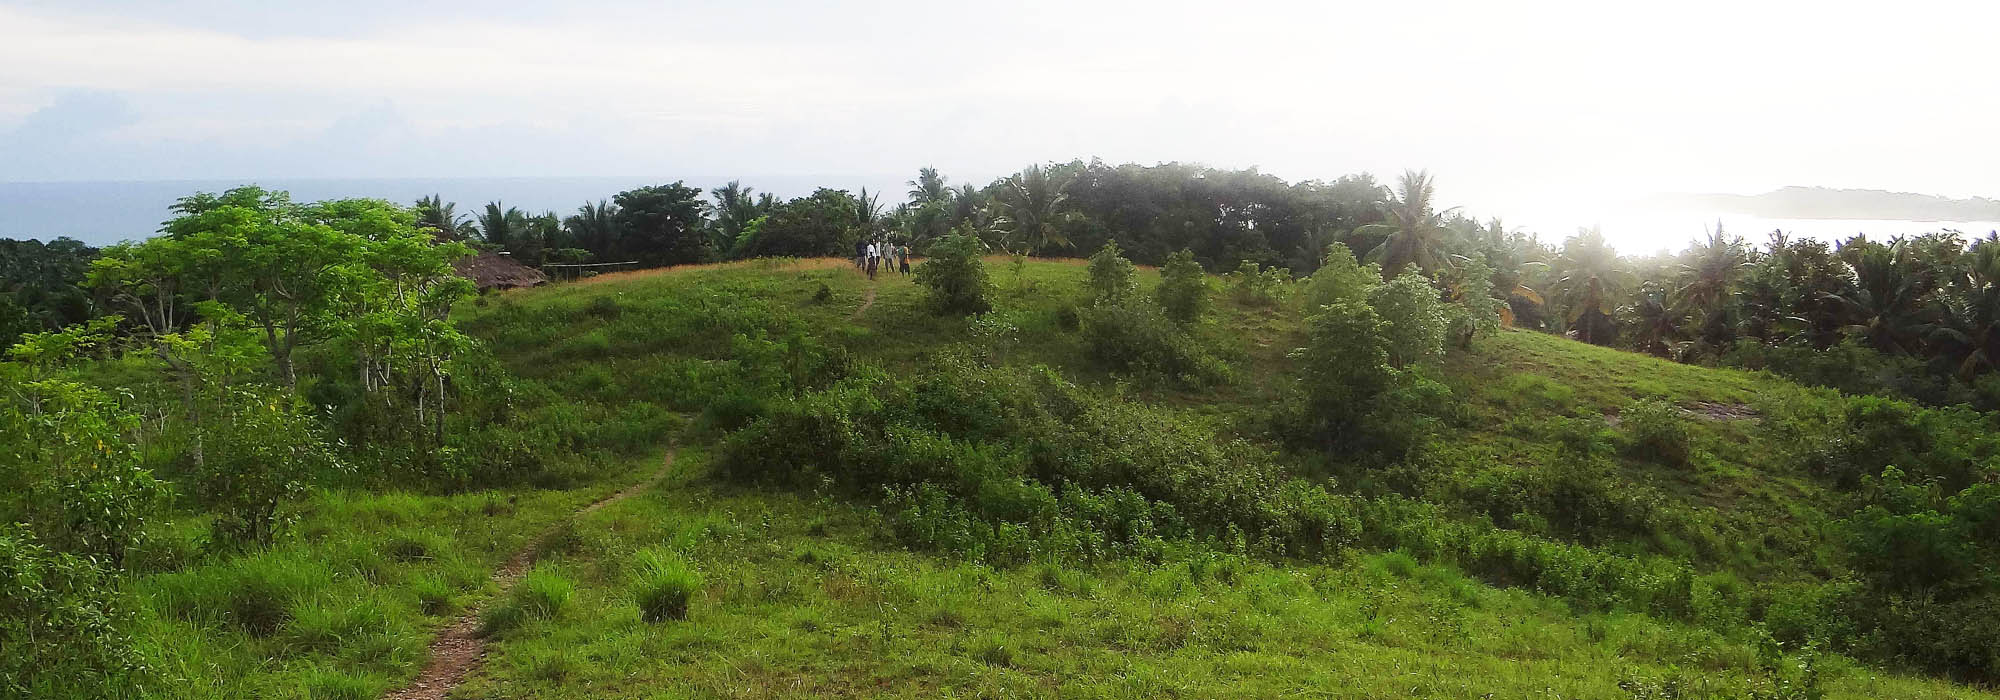 Palamoko South SUMBA Land for Sale 3894 m²